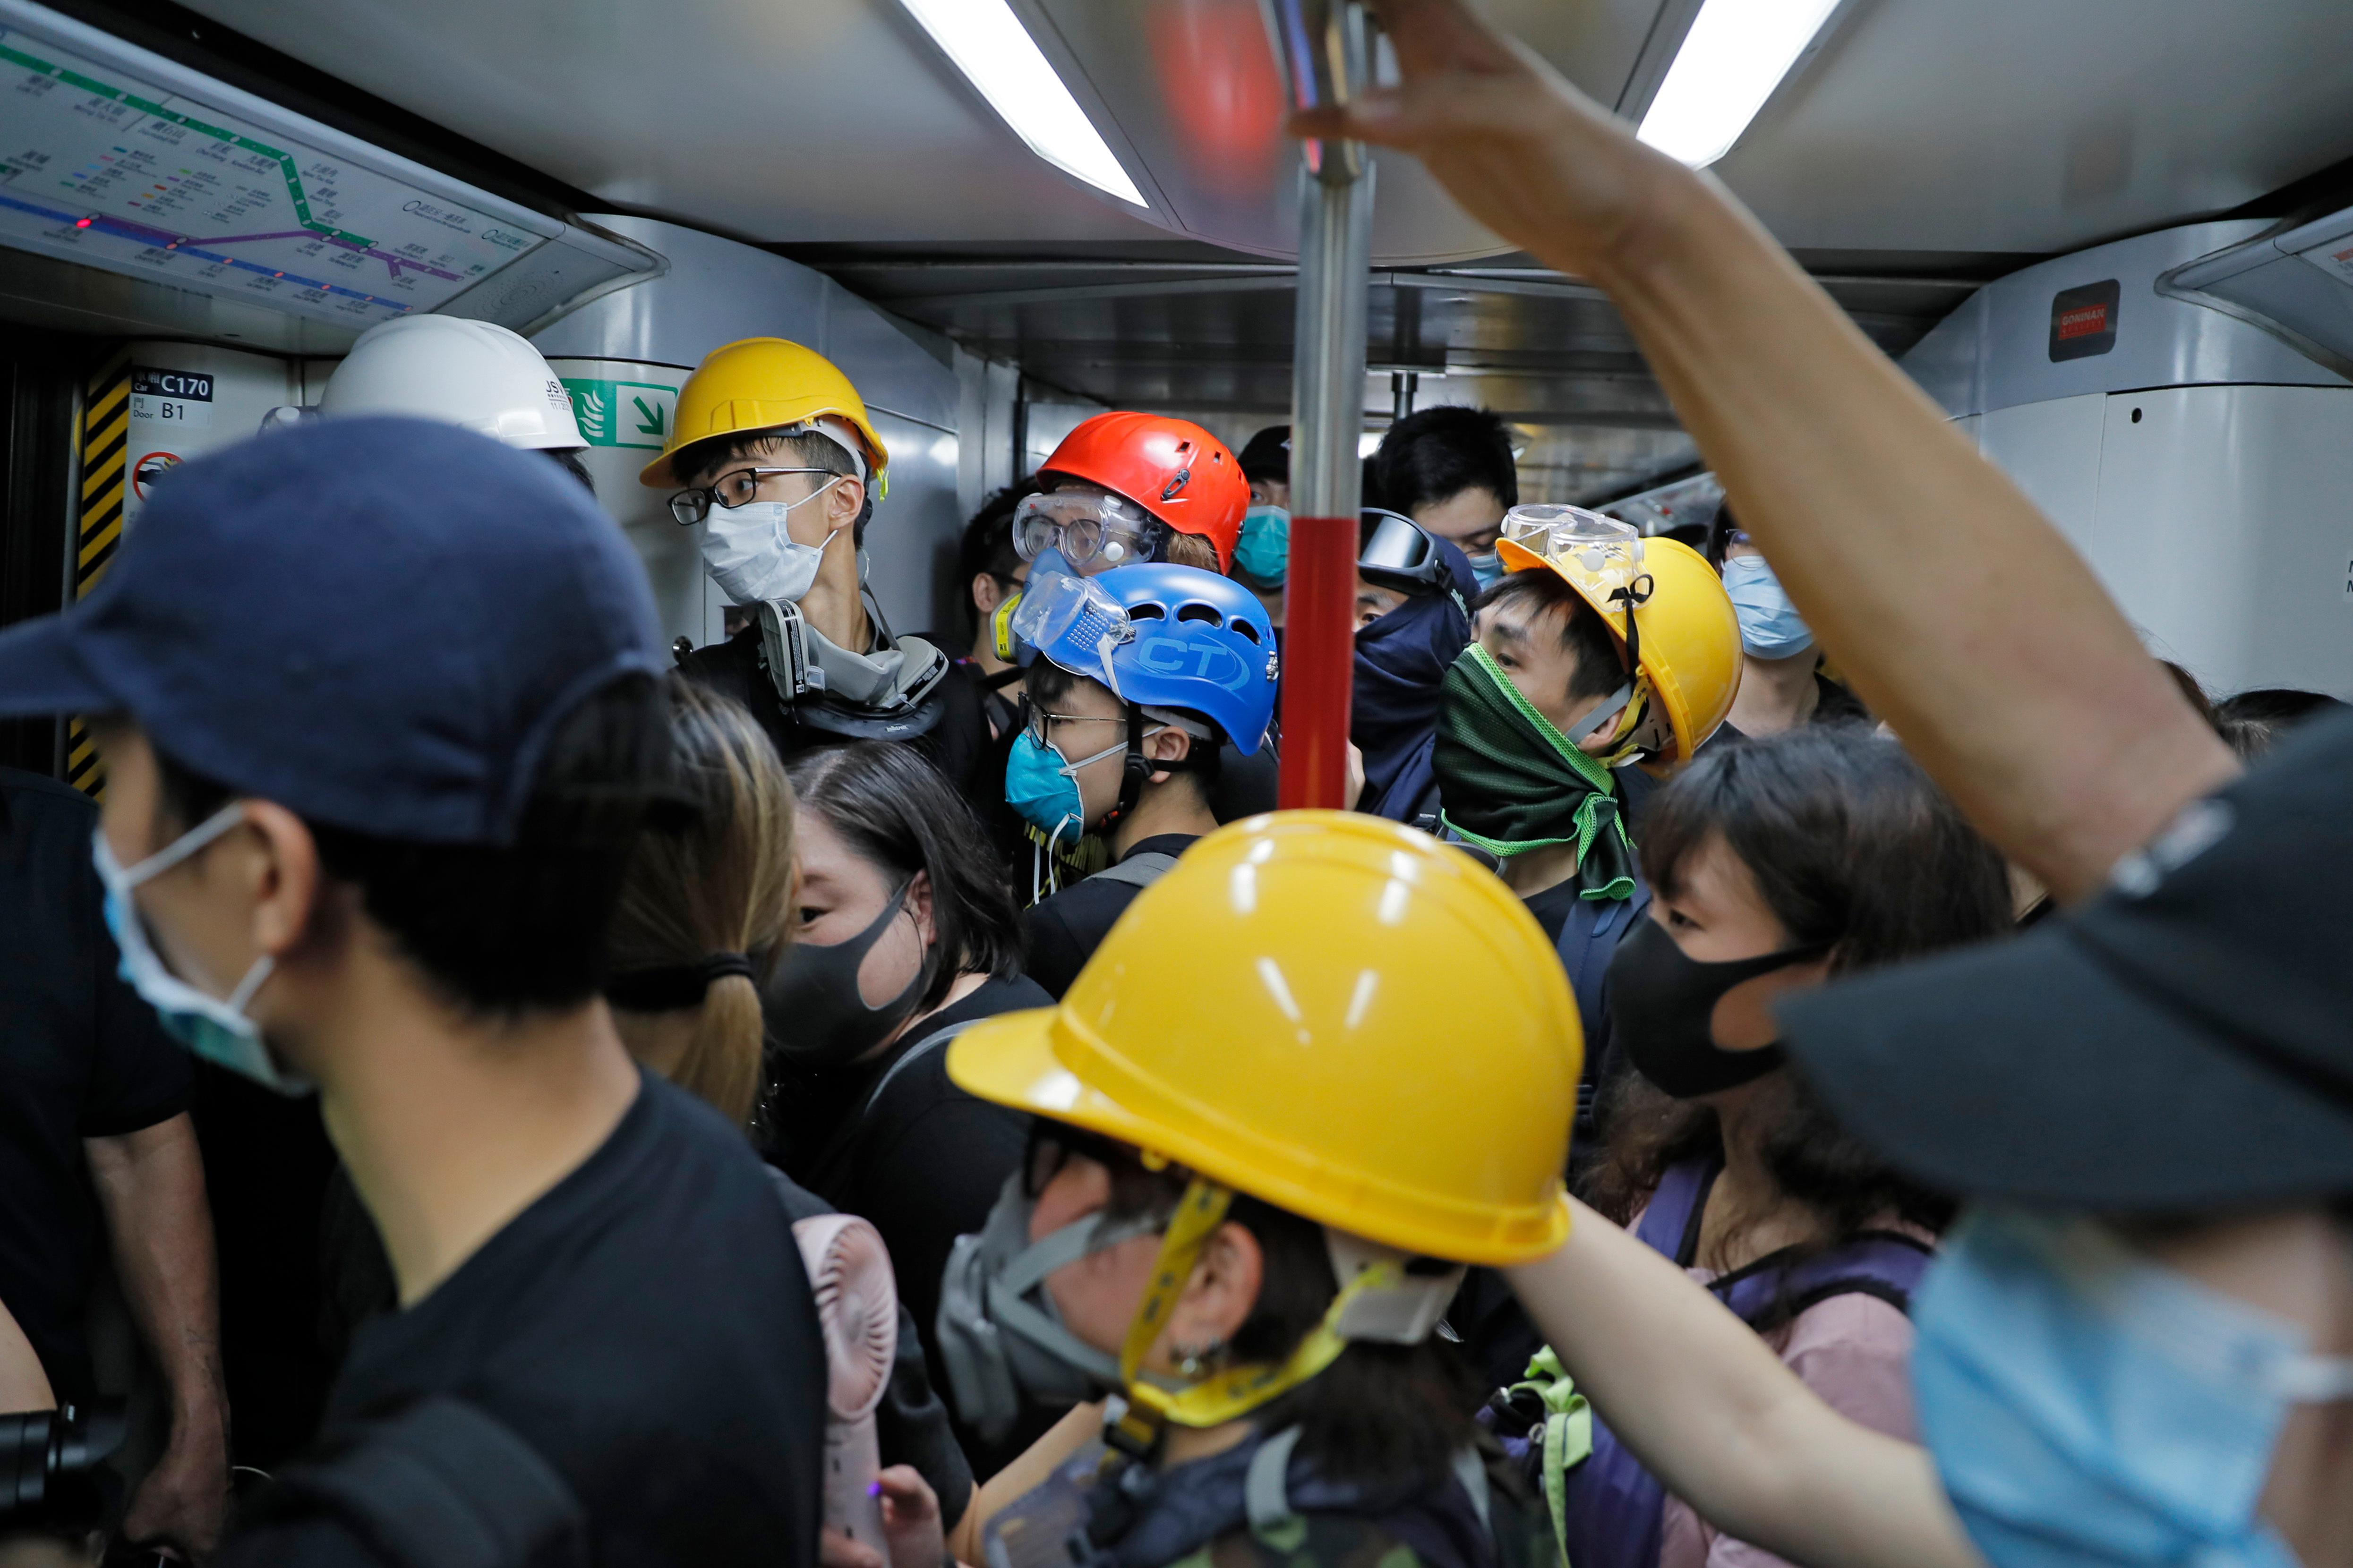 Protesters with protective gear take a train to the anti-extradition bill protest destination, in Hong Kong on Sunday, Aug. 4, 2019. Demonstrators in Hong Kong moved en masse to a luxury shopping district Sunday evening after riot police used tear gas to clear out an area they were previously occupying, as the 2-month-old protest movement showed no signs of easing. (AP Photo/Kin Cheung)